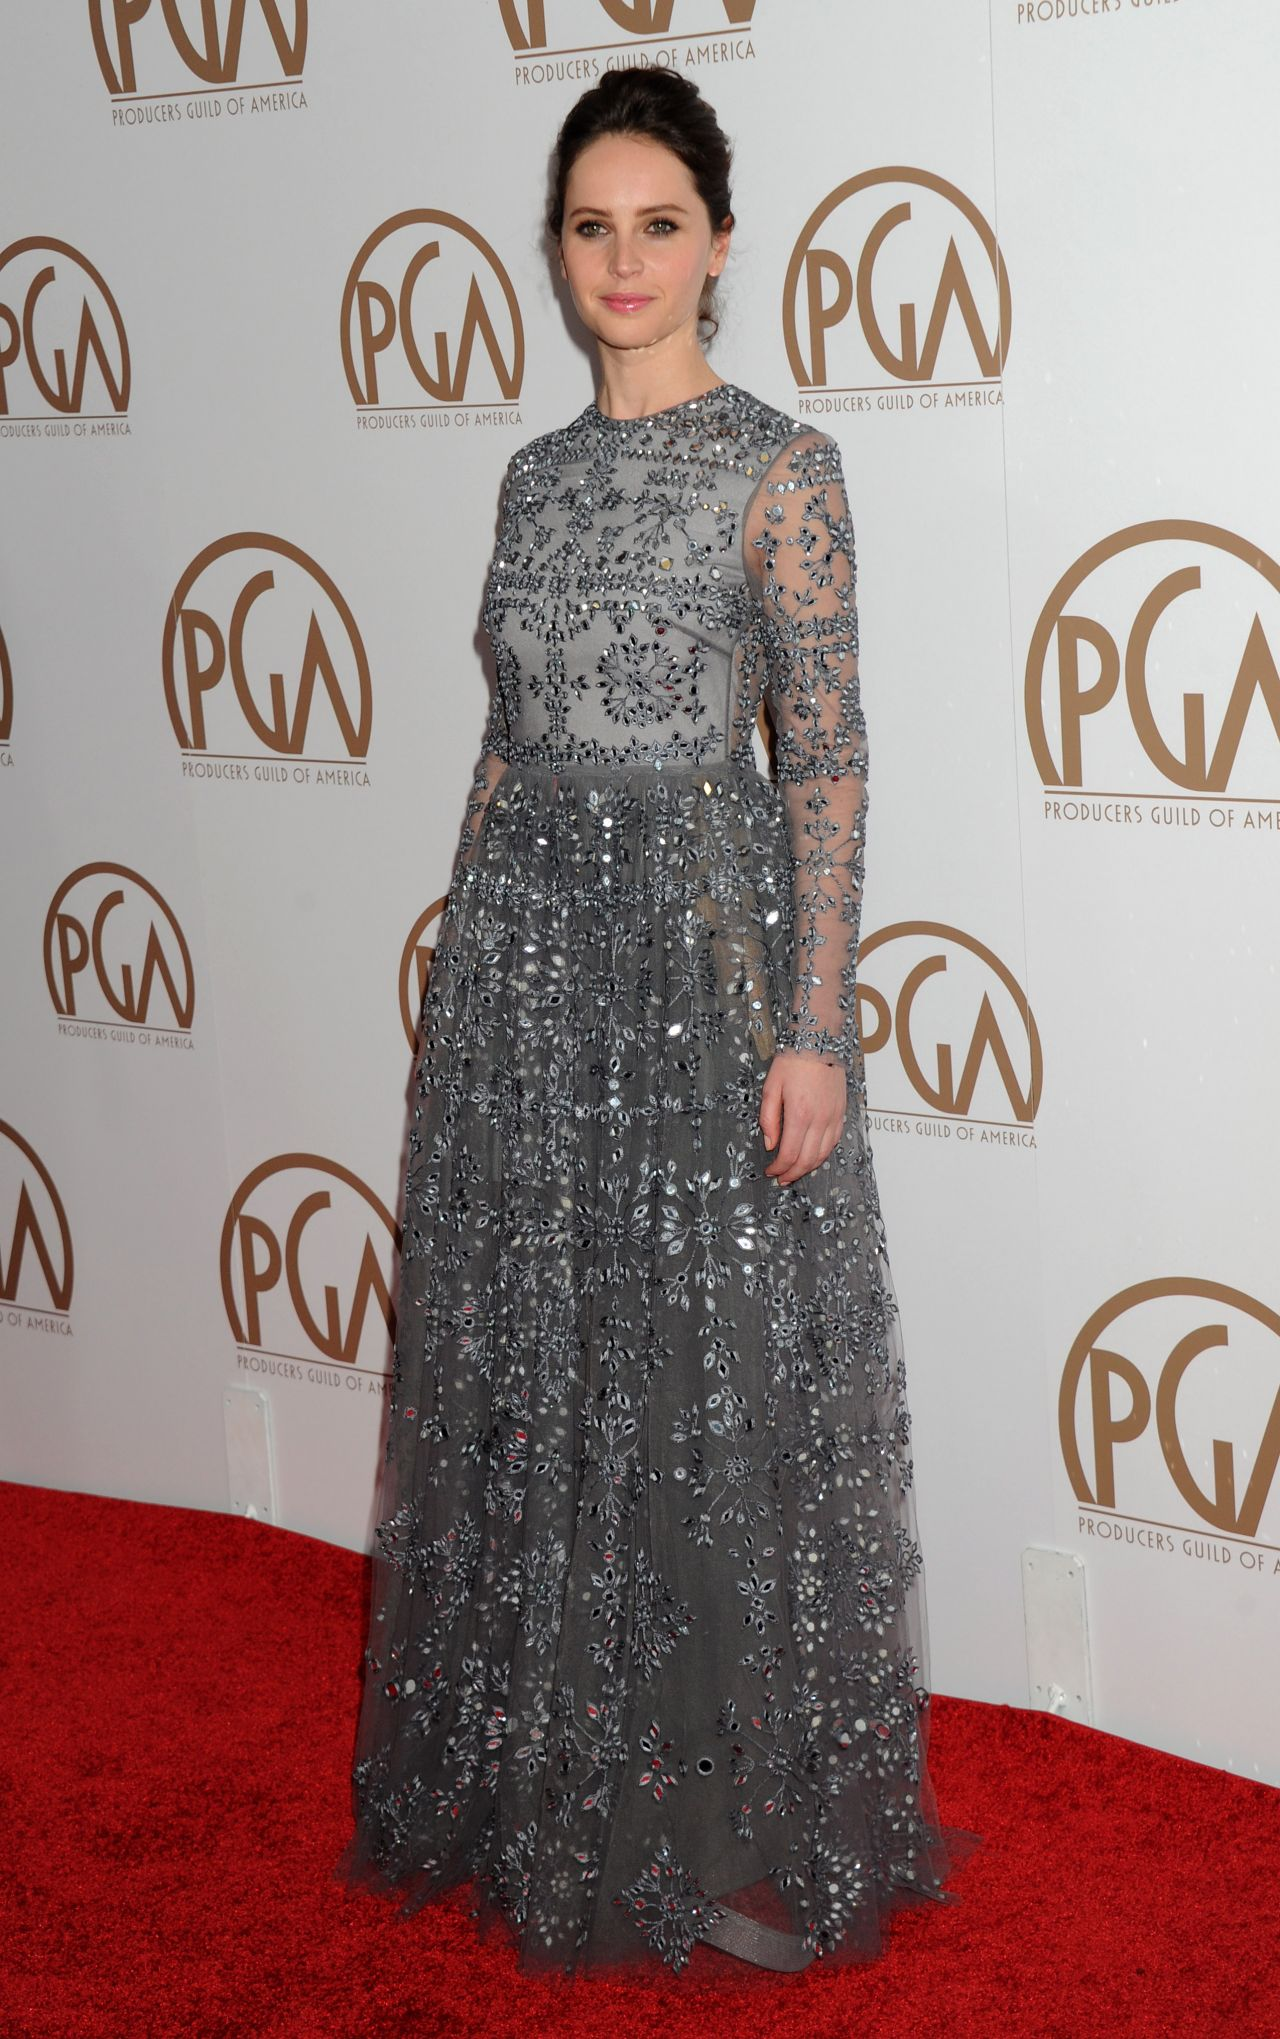 felicity-jones-2015-producers-guild-awards-in-los-angeles_8